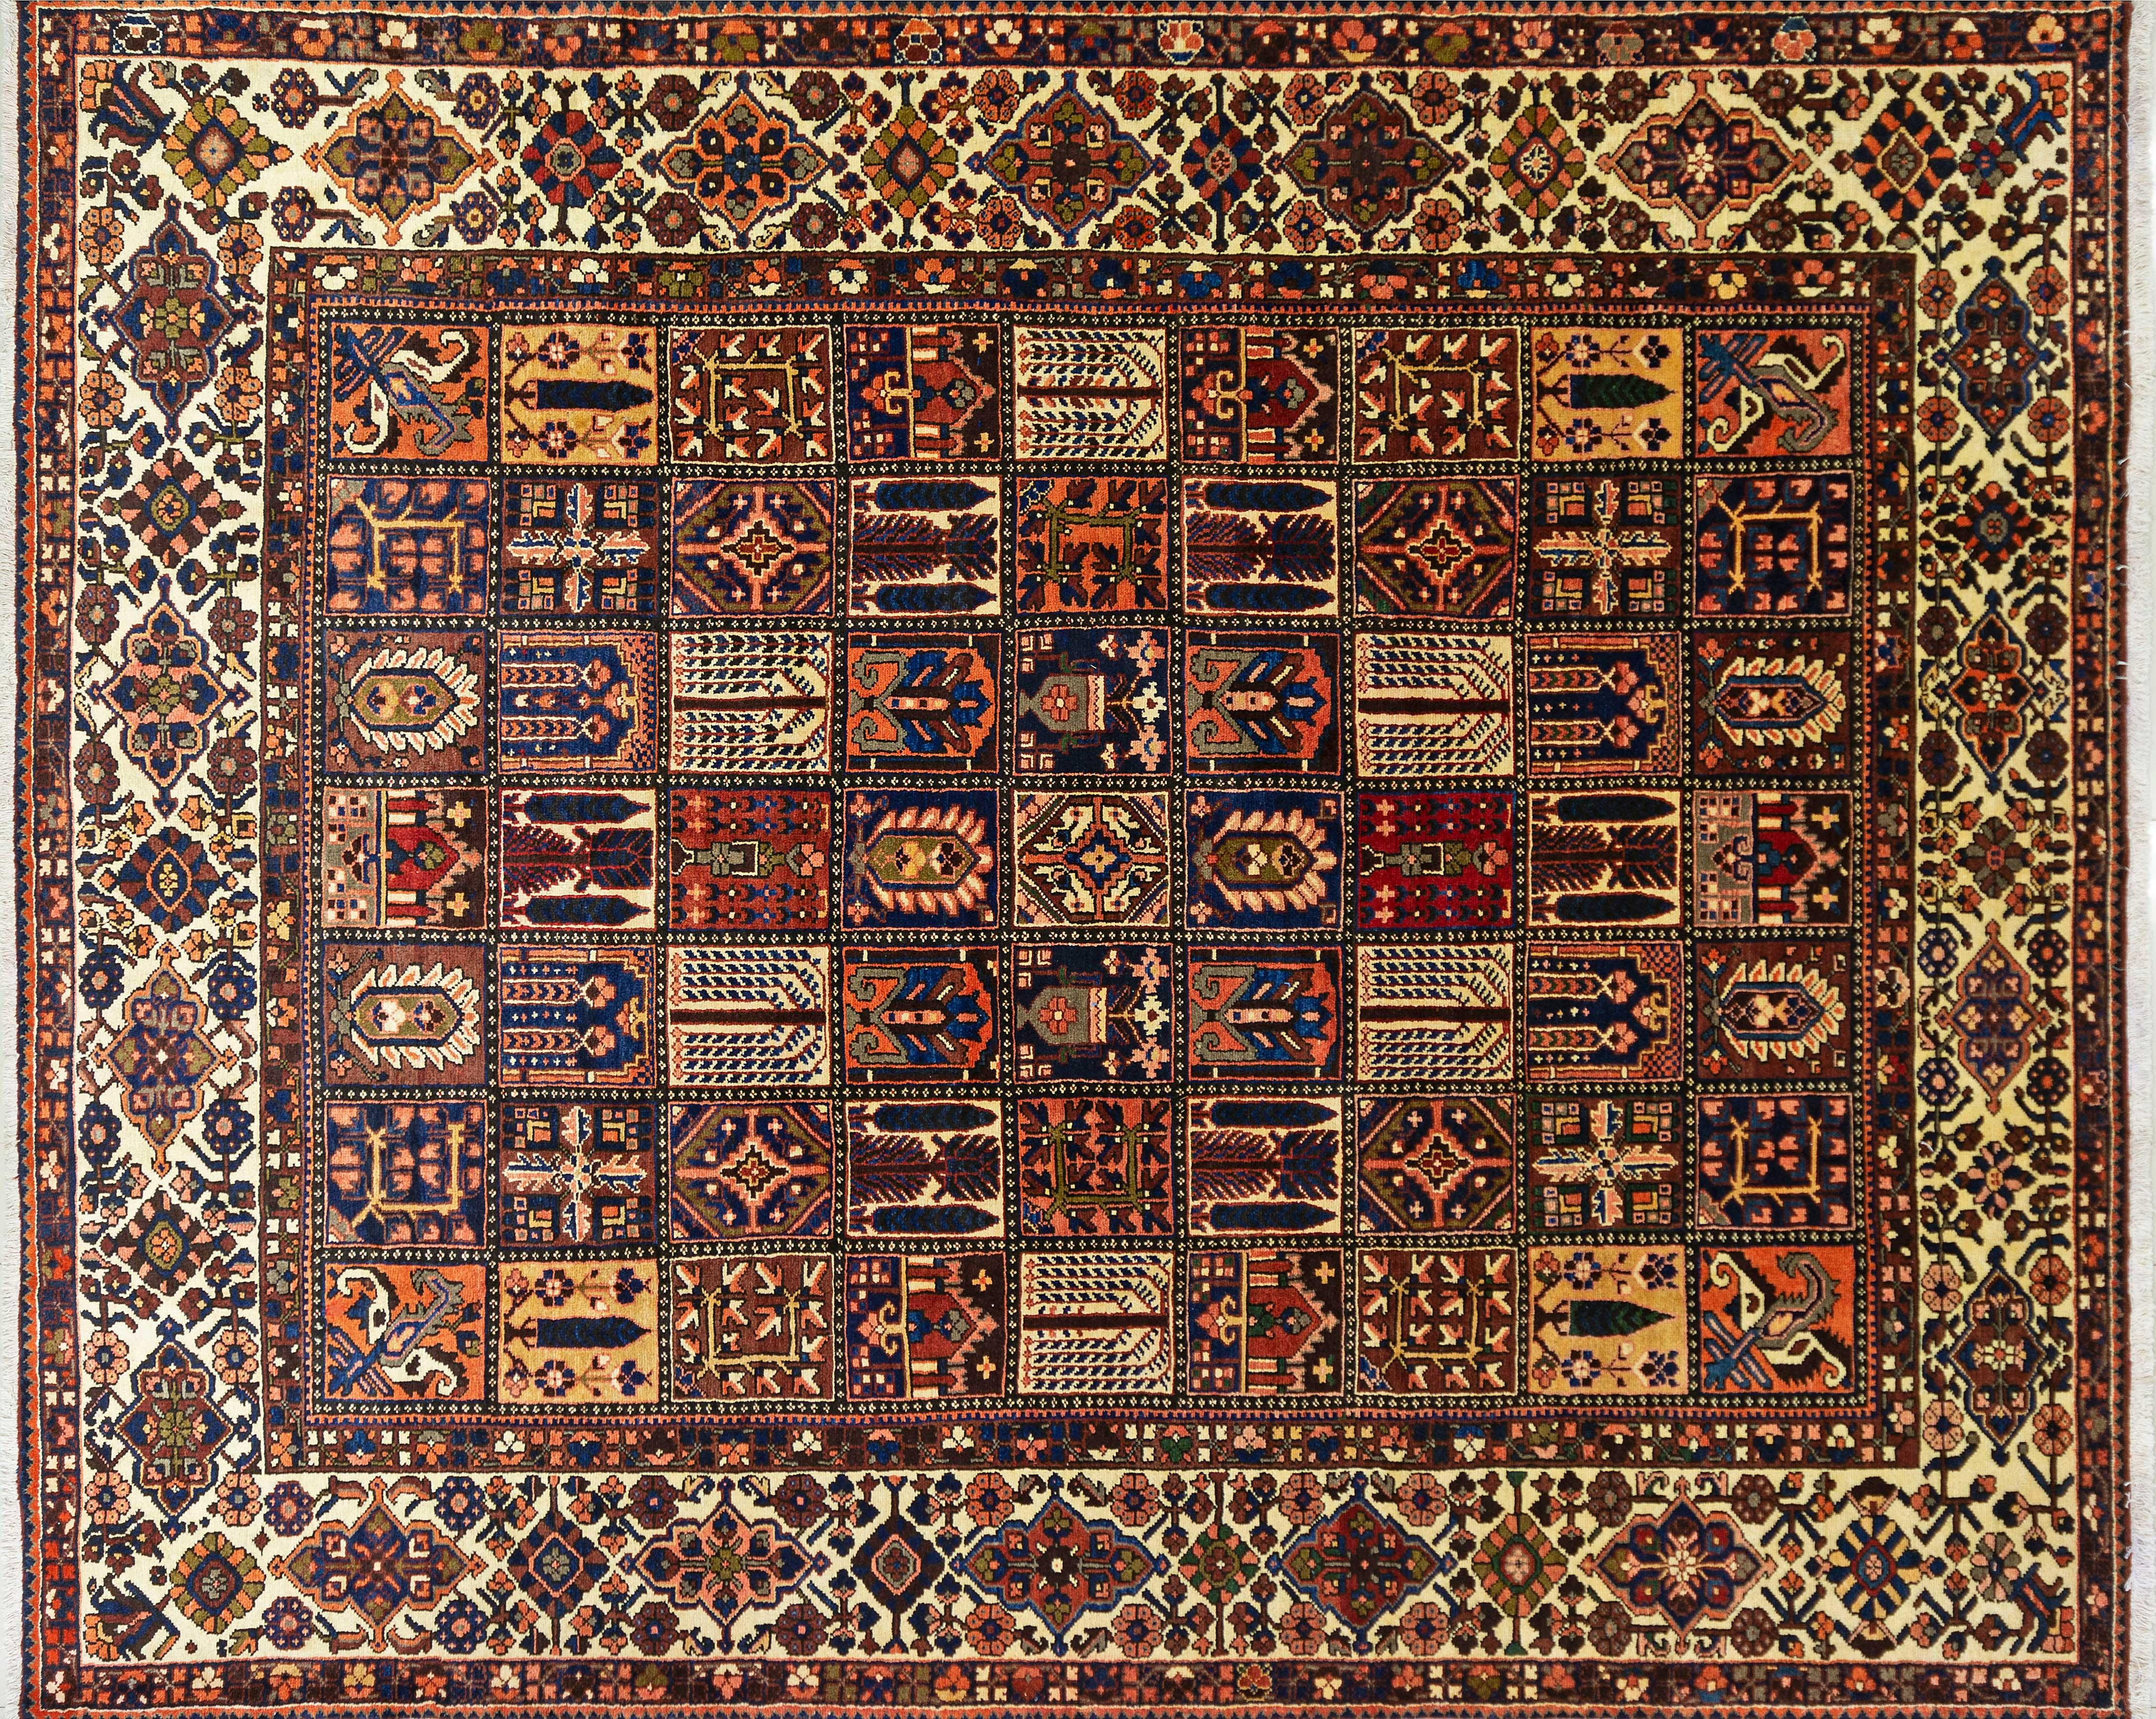 A Persian Hand Knotted Bakhtiari Carpet, 380 x 313